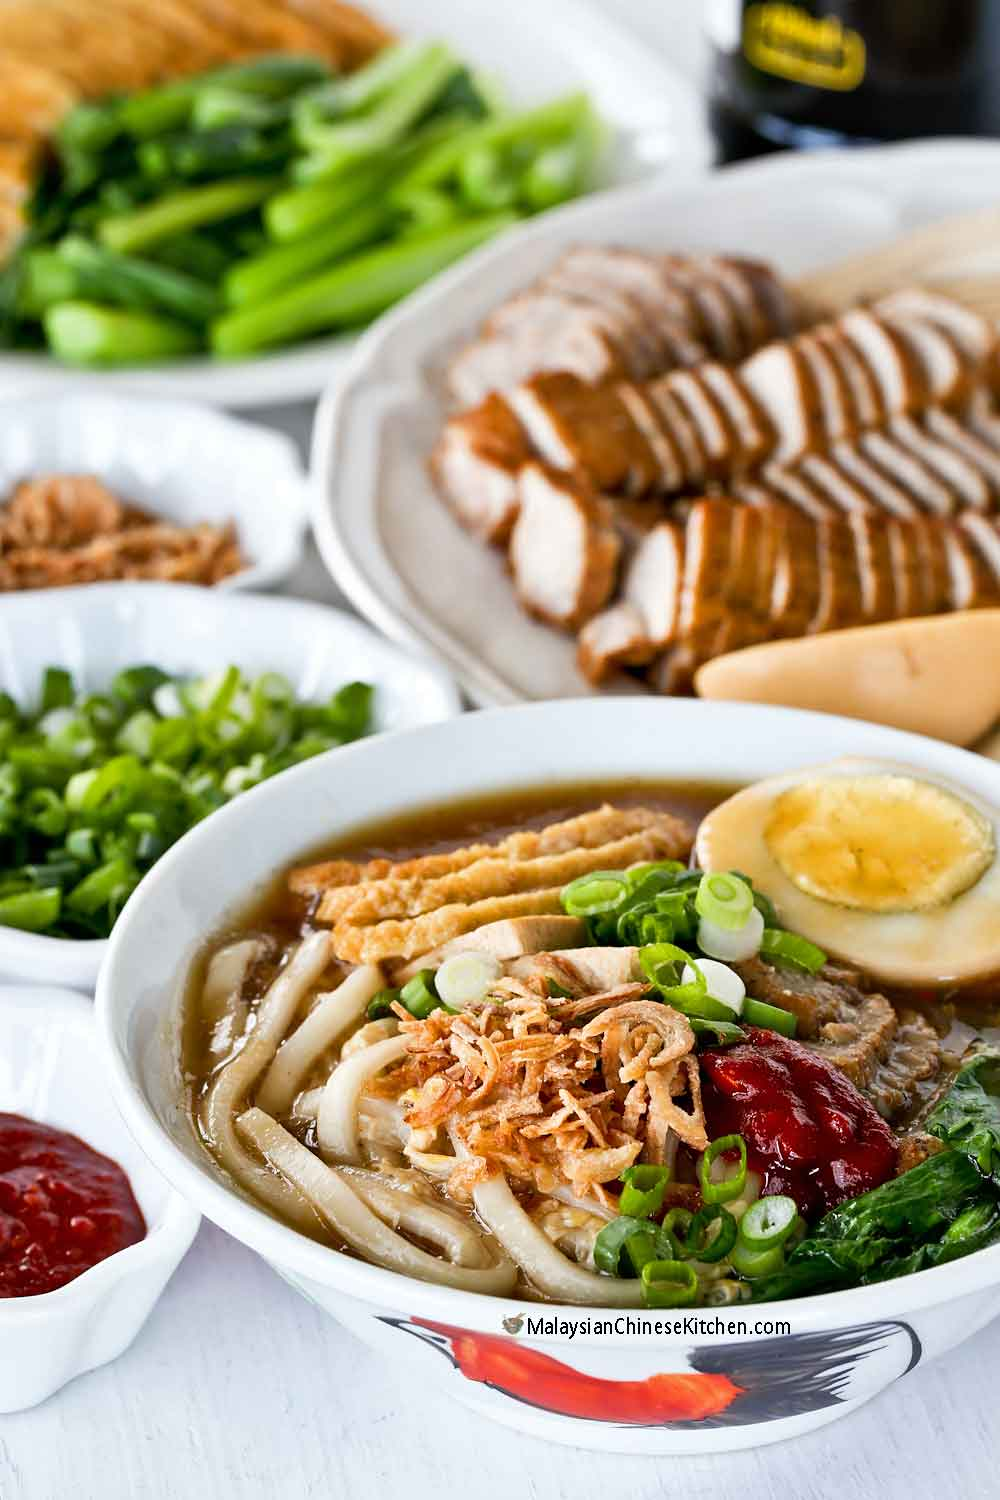 Lor Mee (Braised Noodles) served with a variety of toppings.